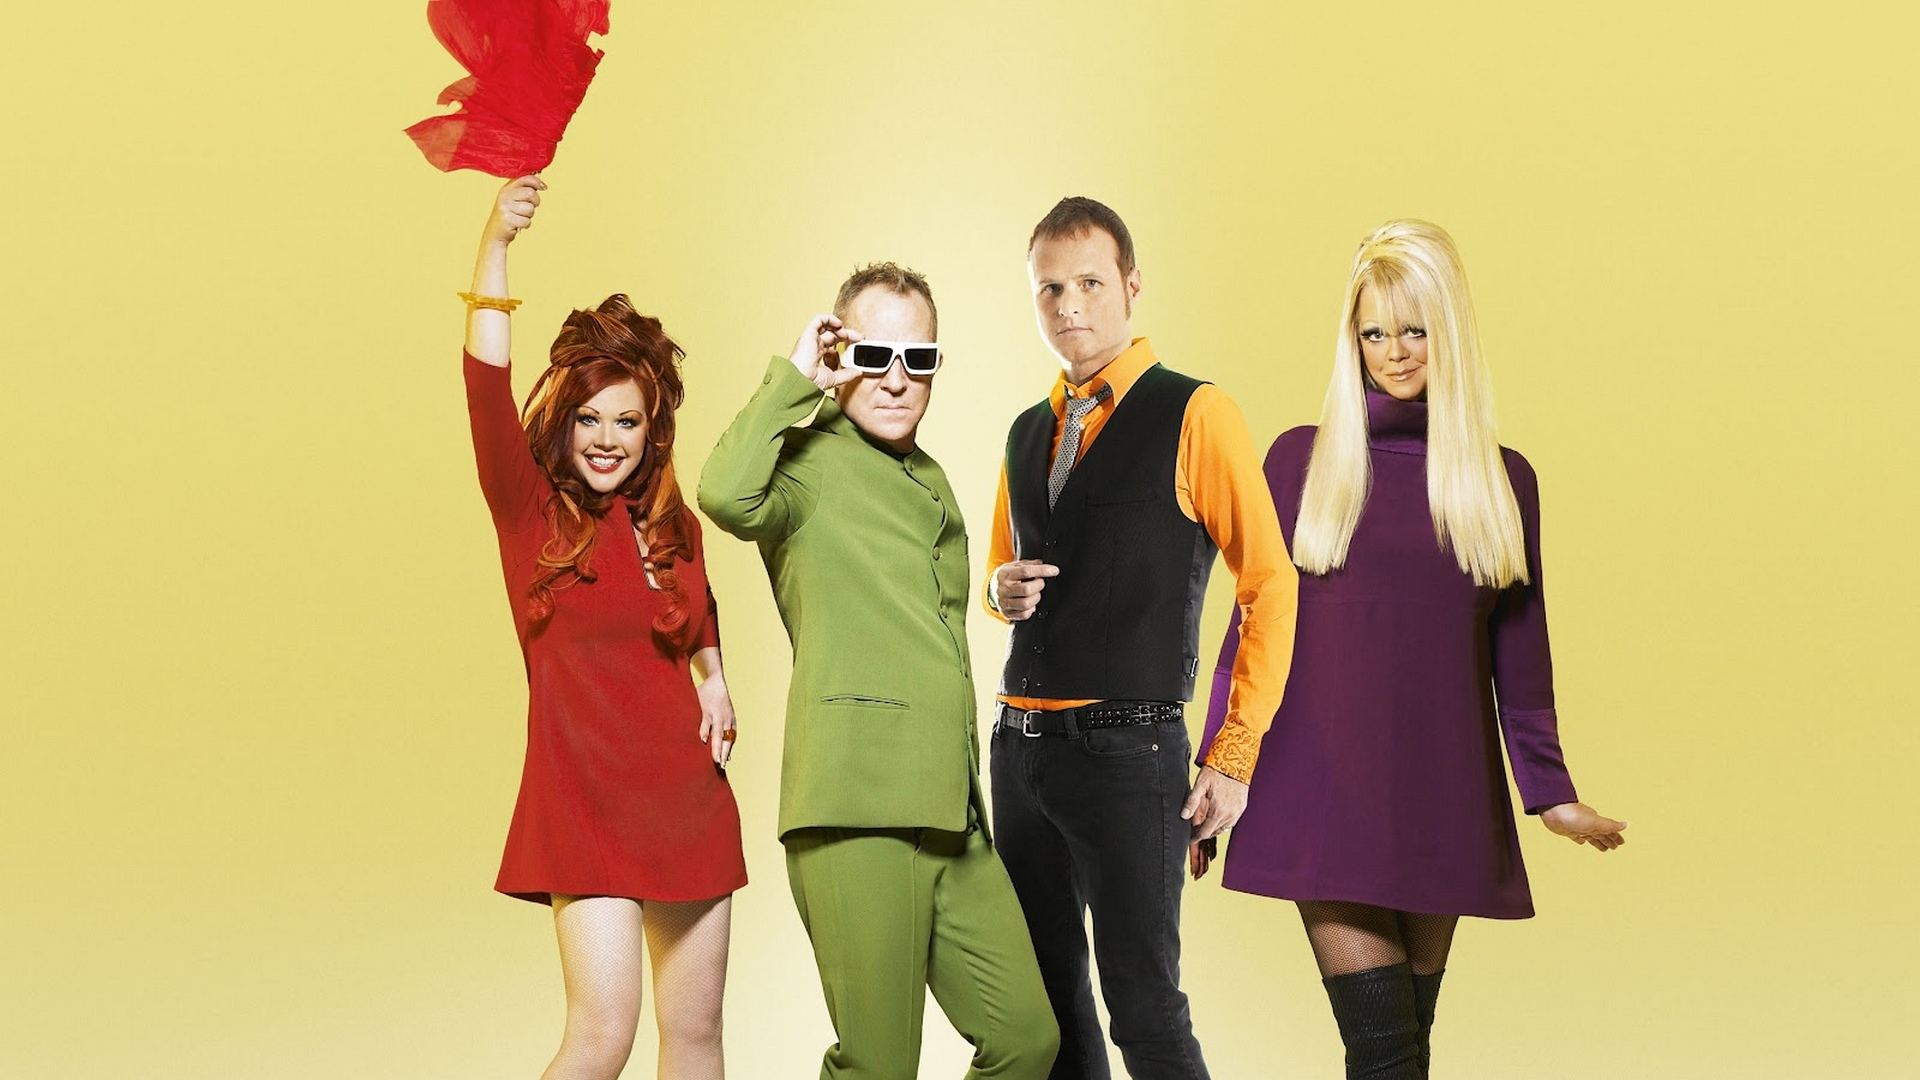 1920x1080 > The B 52s Wallpapers